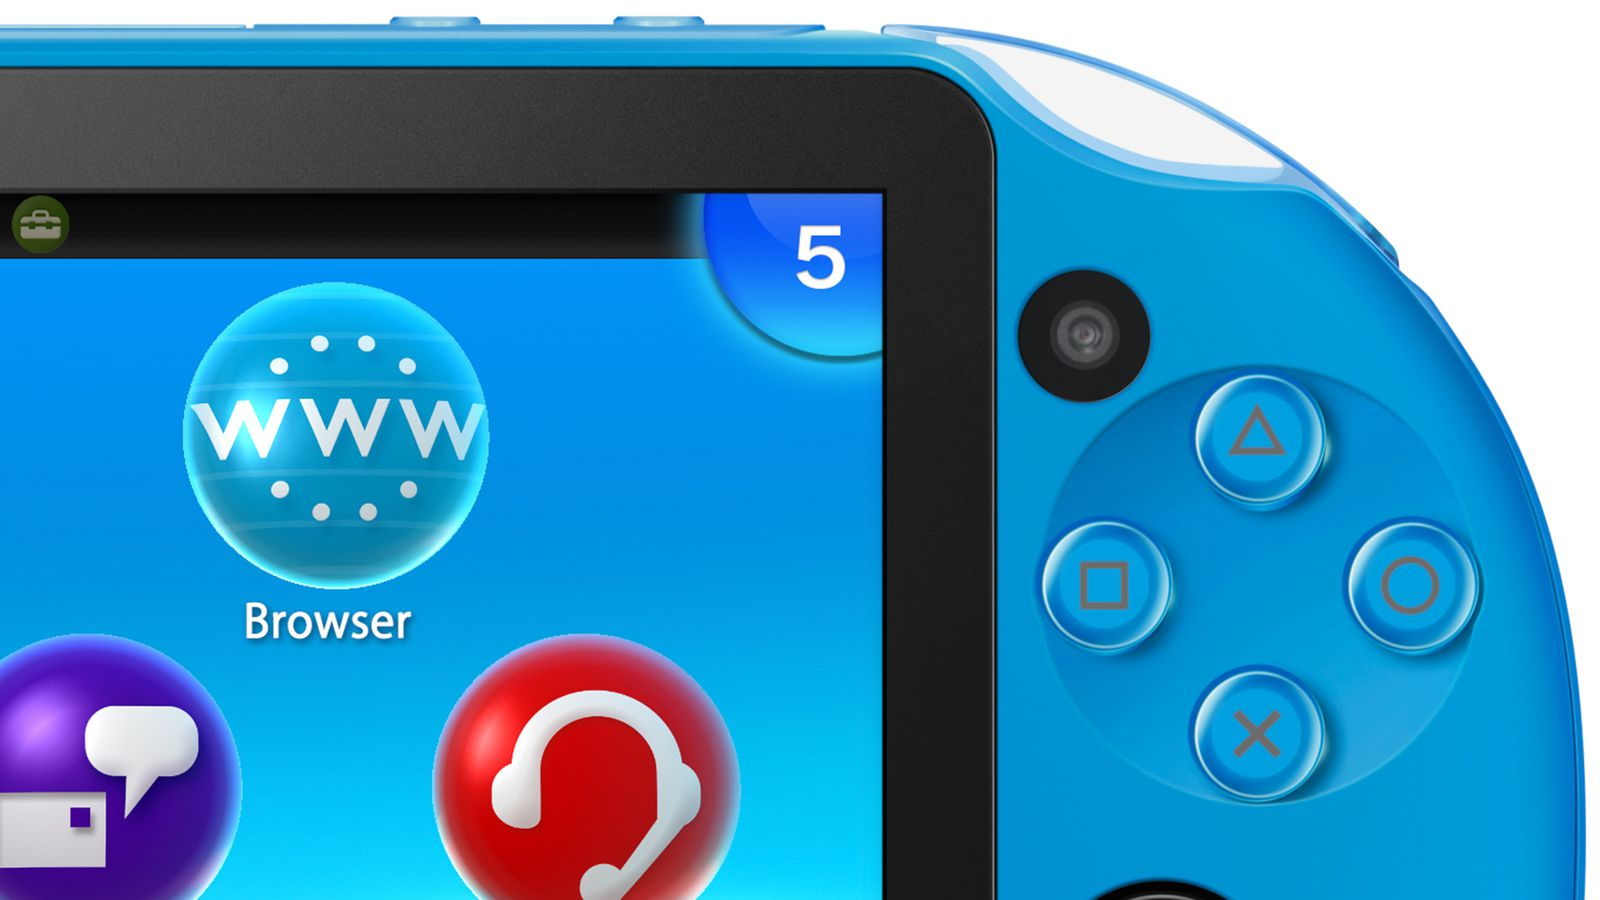 PlayStation Vita may die childless, but it changed Sony in time for the PS4